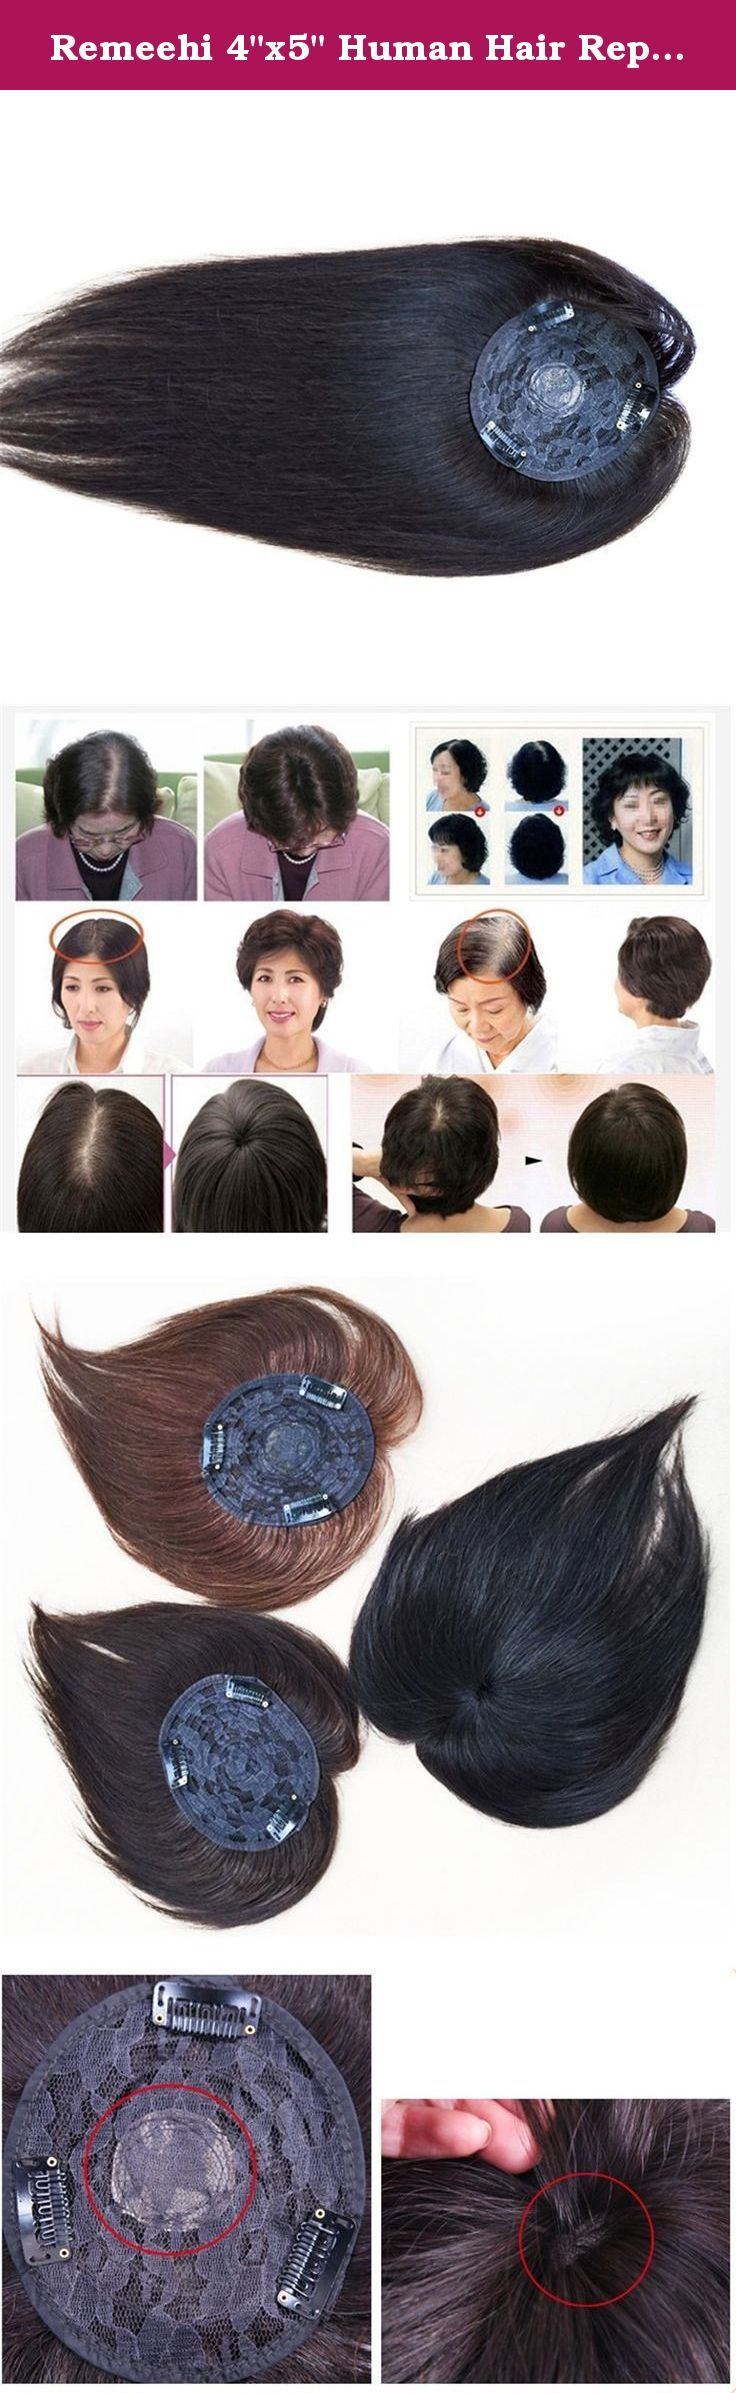 """Remeehi 4""""x5"""" Human Hair Replacement Clip In Hair Top Piece Extensions Seamless Hand Made Tied Hair Topper Hairpiece Thicken(30cm/12"""" Natural Black). Hair type:straight Human Hair topper Texture: straight Hair color: natural black;dark brown; light brown Base material: Imported Net Base size: 11*12cm . ."""